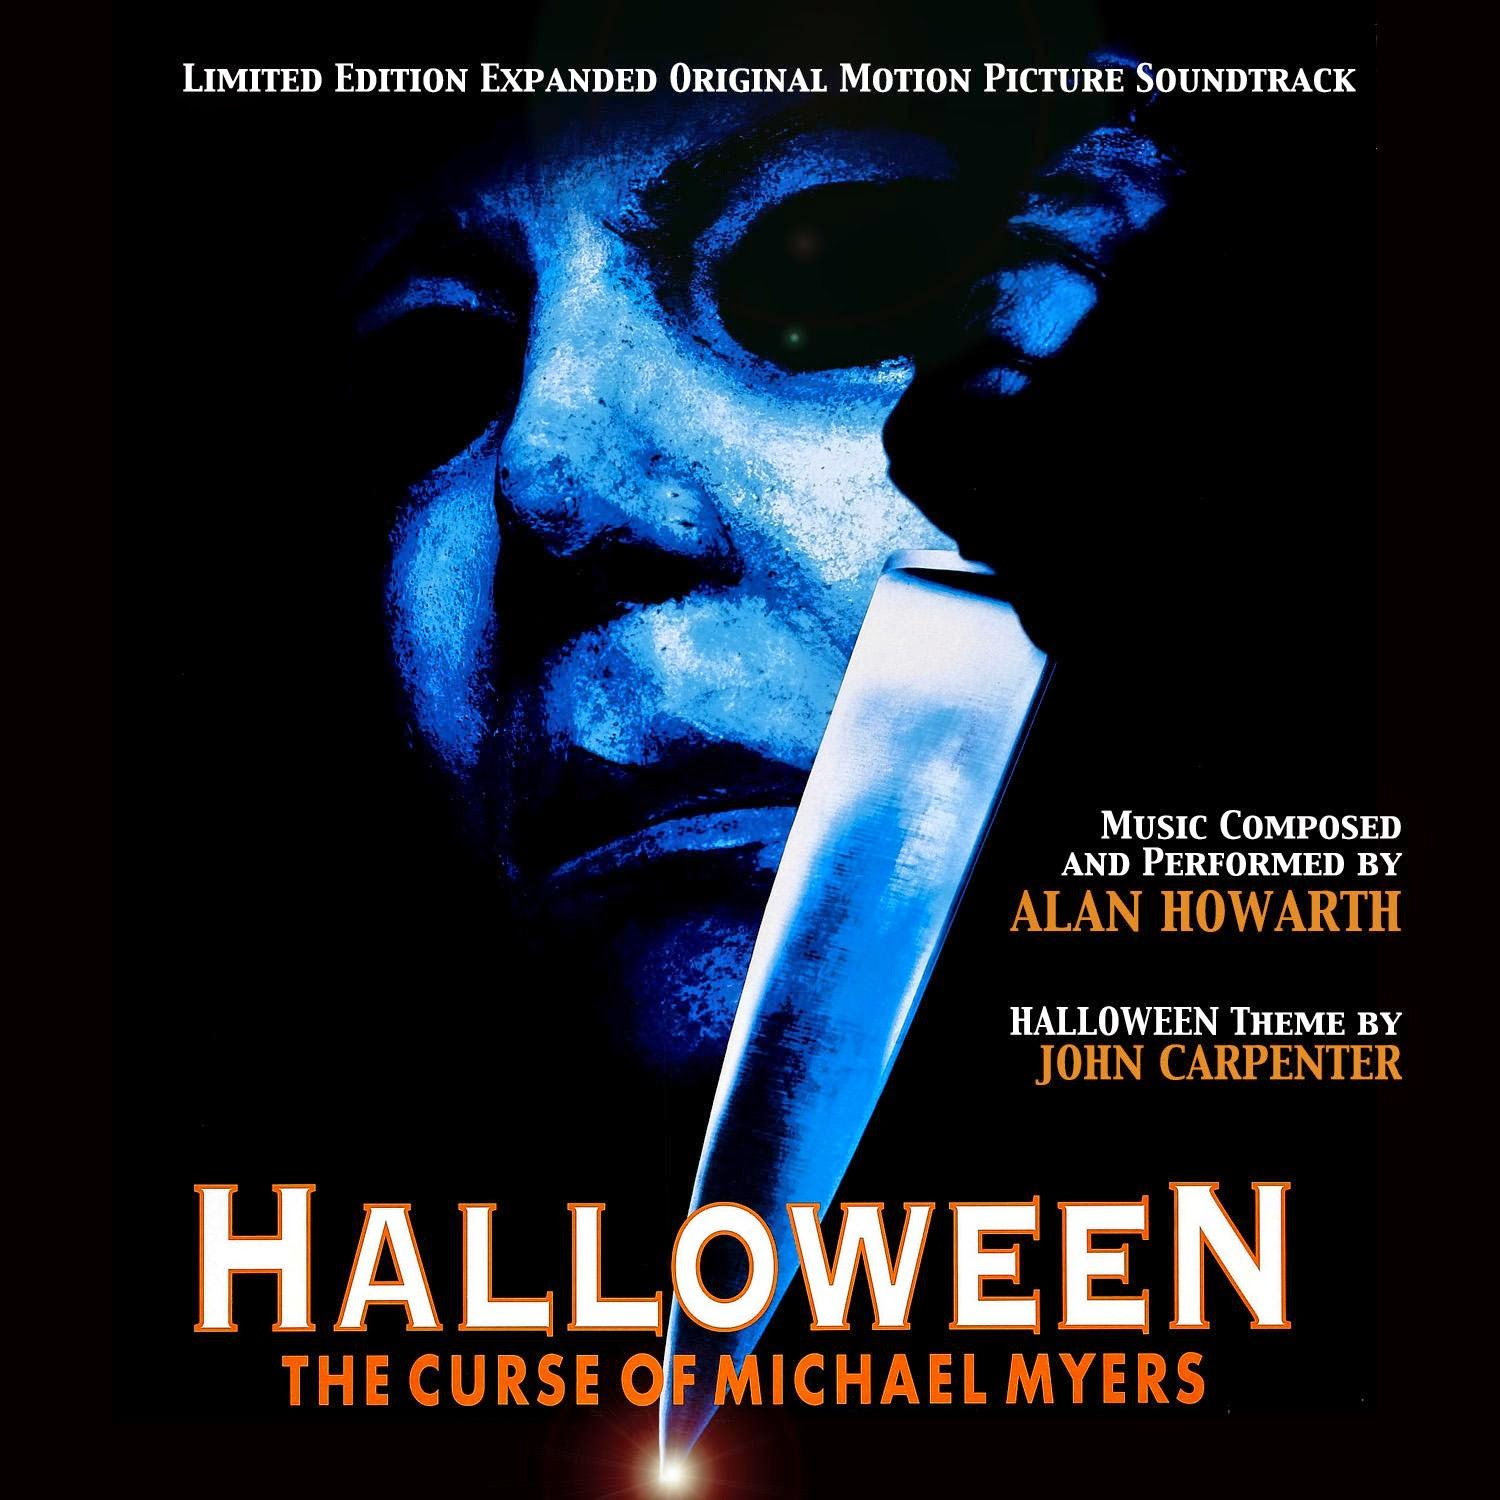 Halloween 6\u0027 Double CD Expanded Soundtrack Cover Art